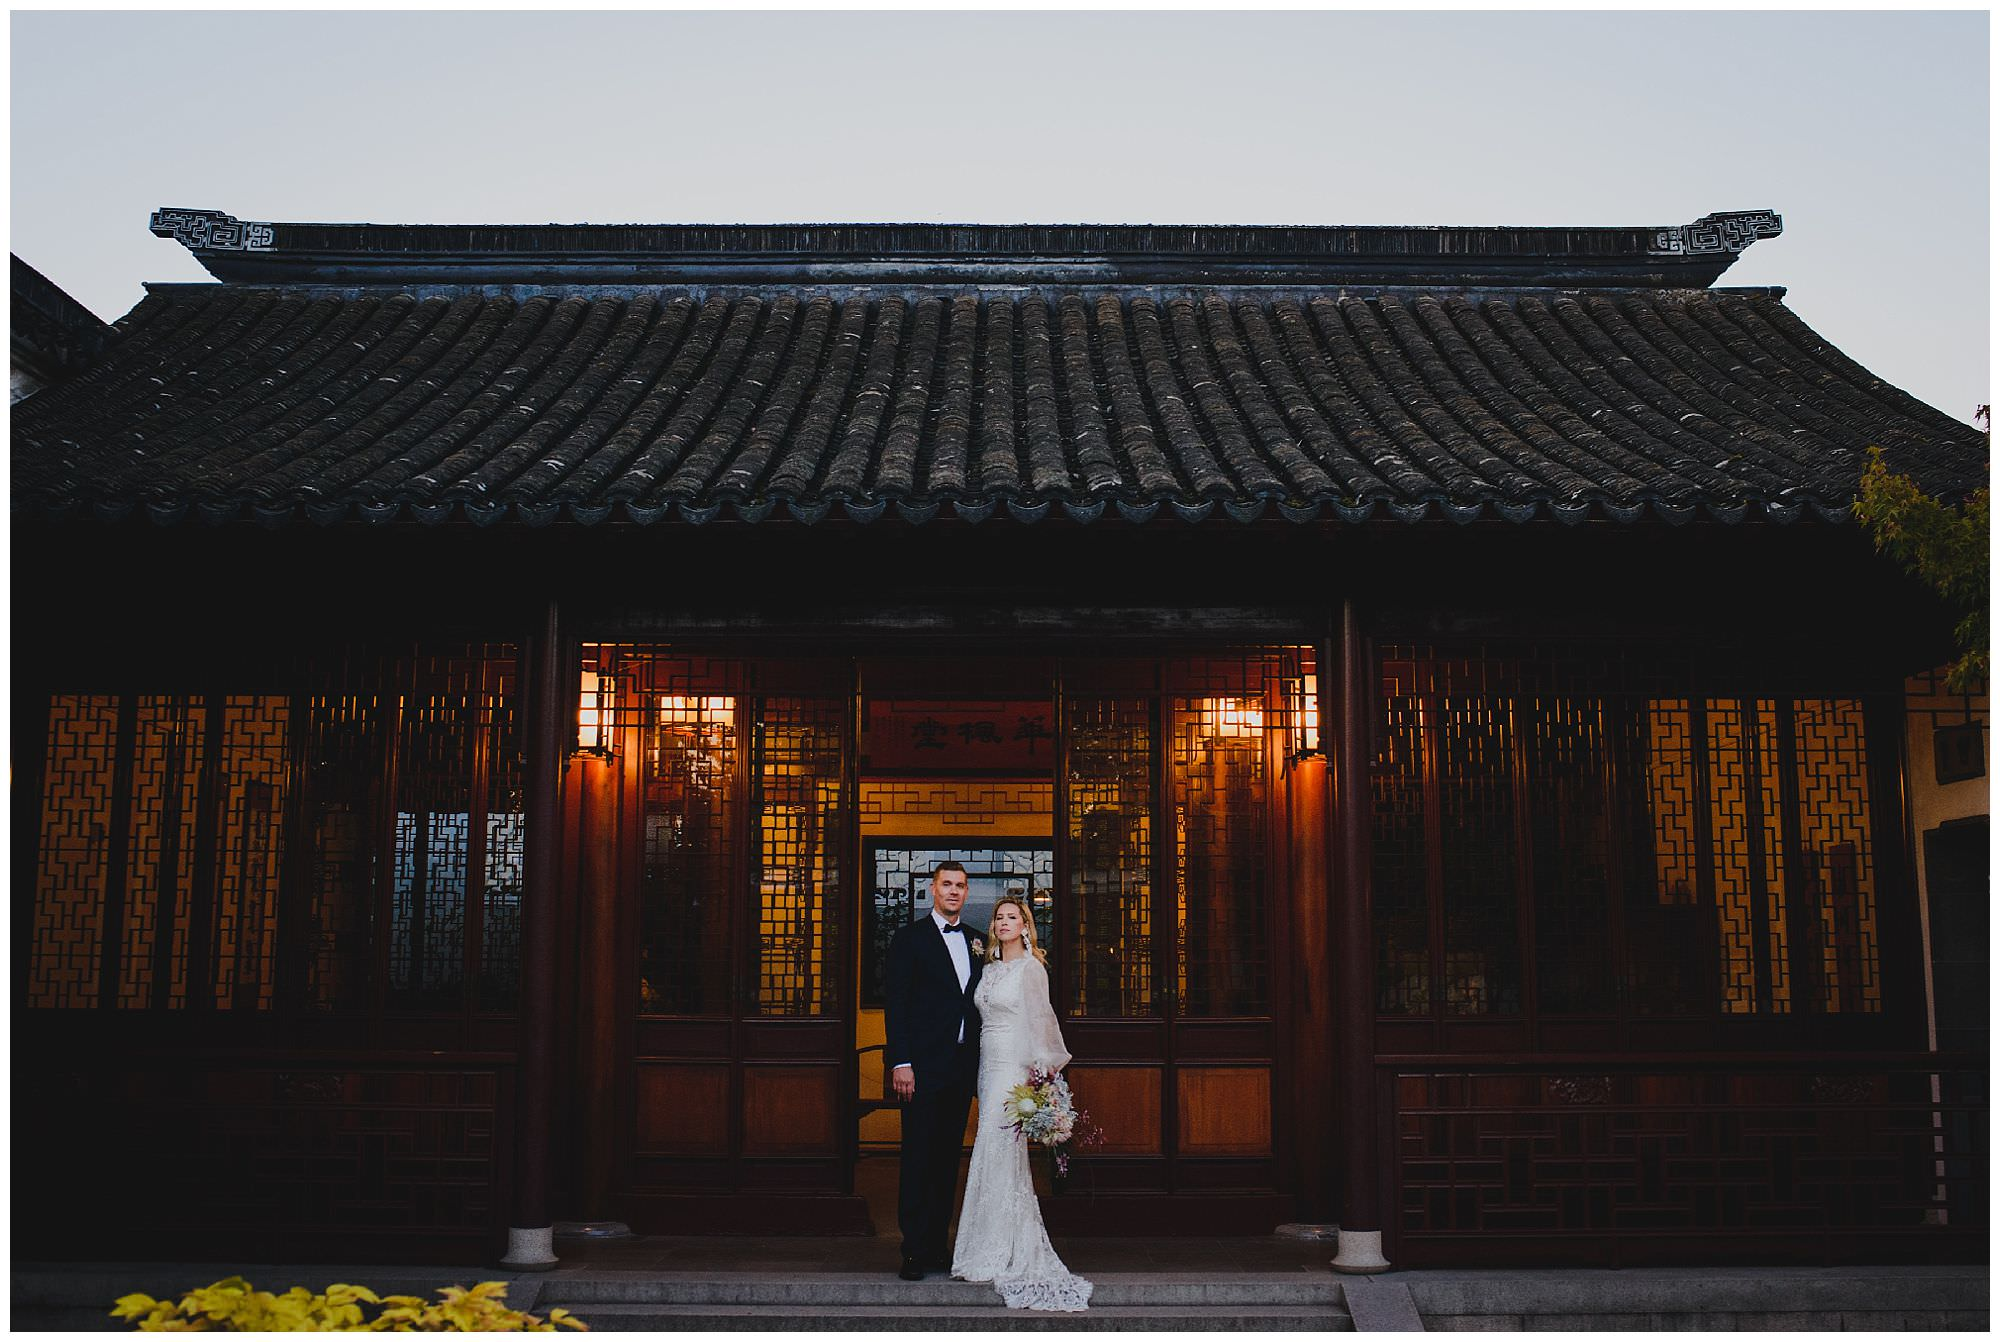 Stylish wedding at Dr. Sun Yat Sen gardens